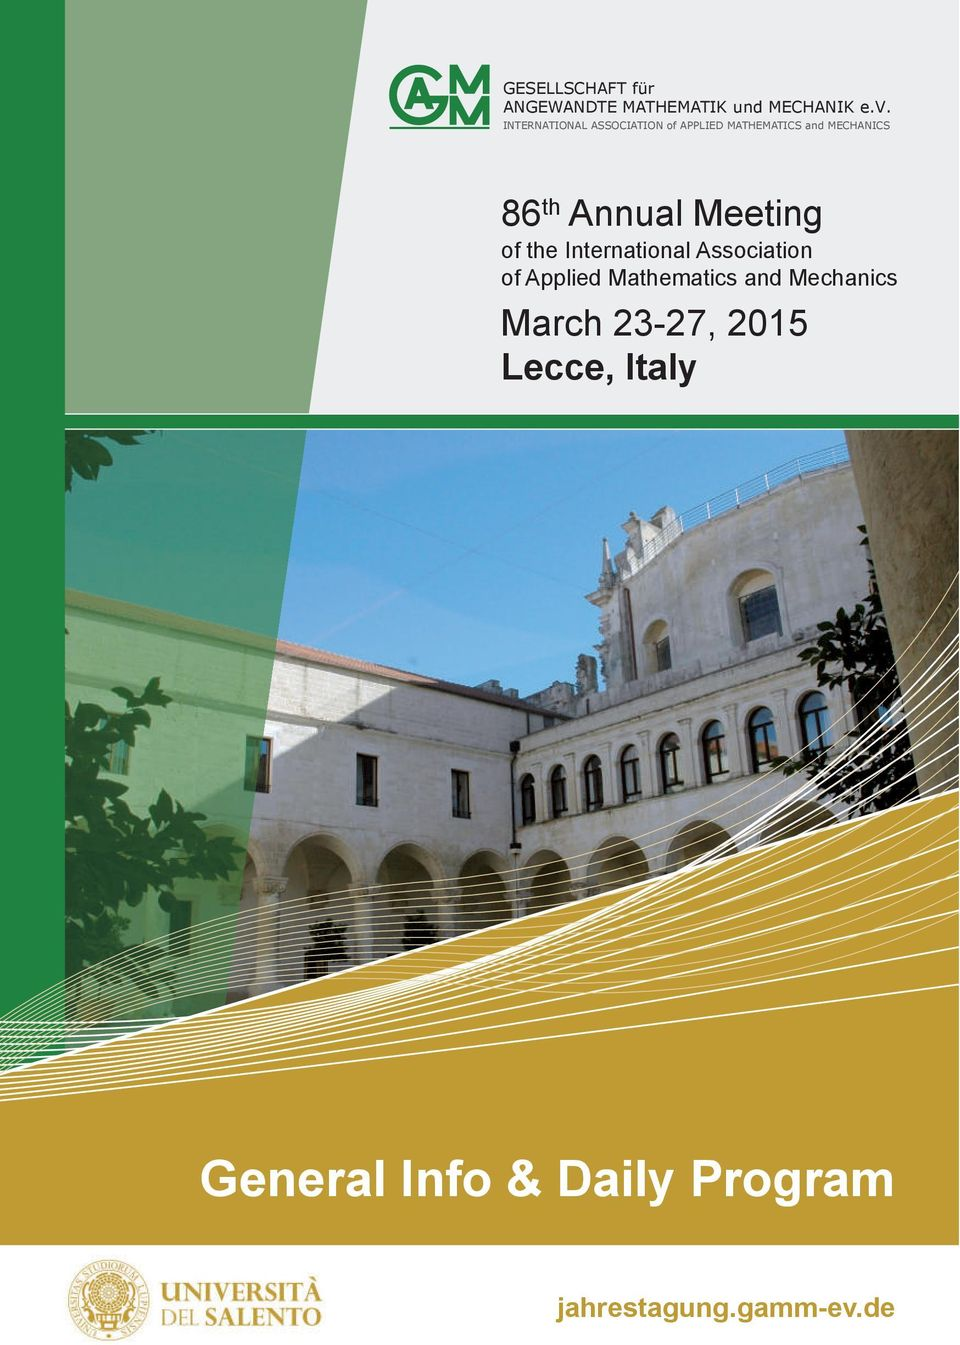 Annual Meeting of the International Association of Applied Mathematics